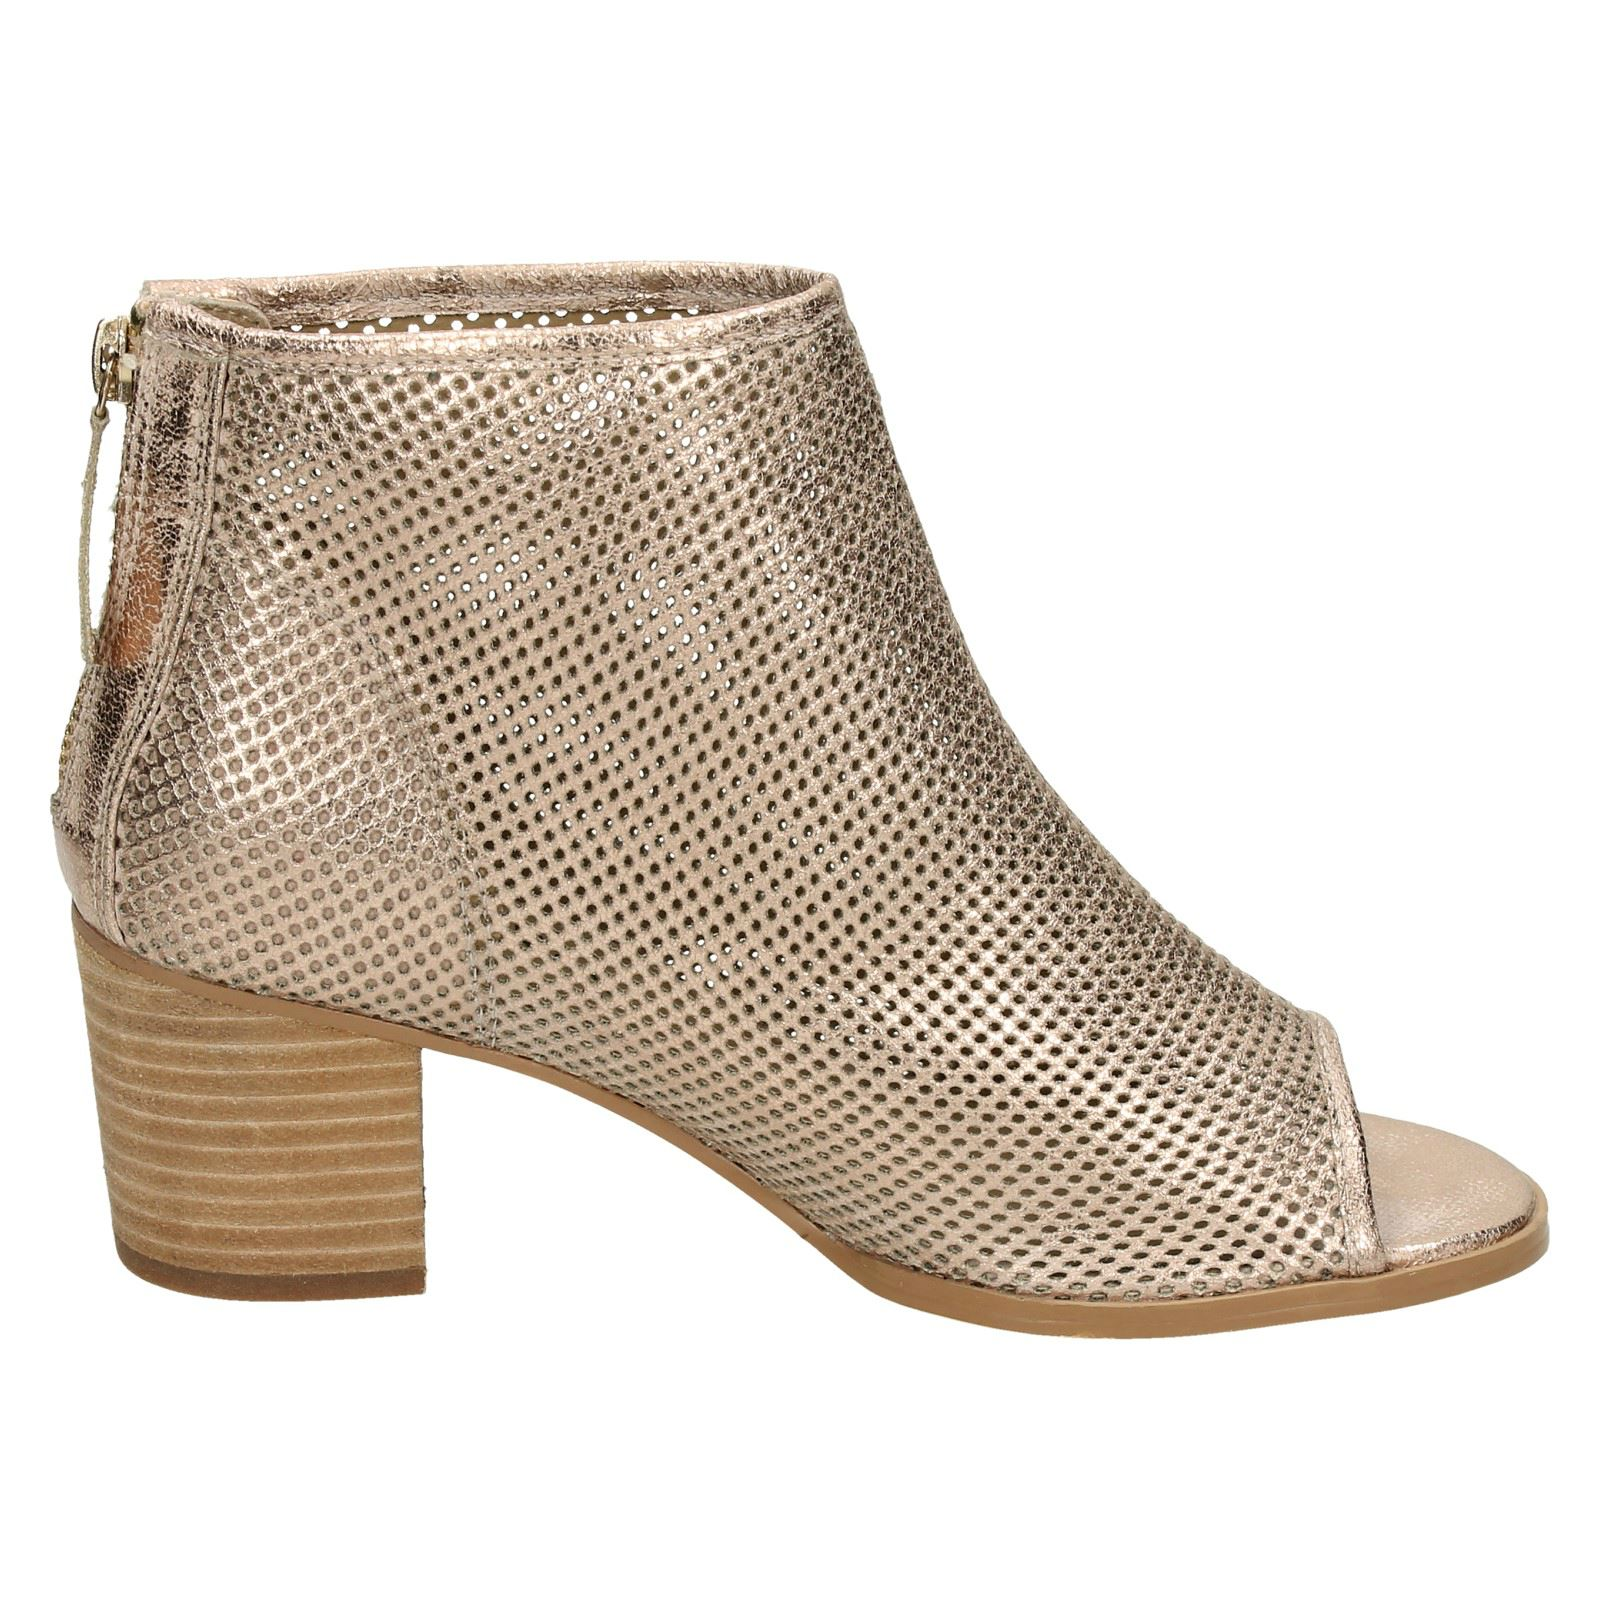 Ladies Savannah Synthetic Zip Up Peep Toe Perforated Ankle Boots